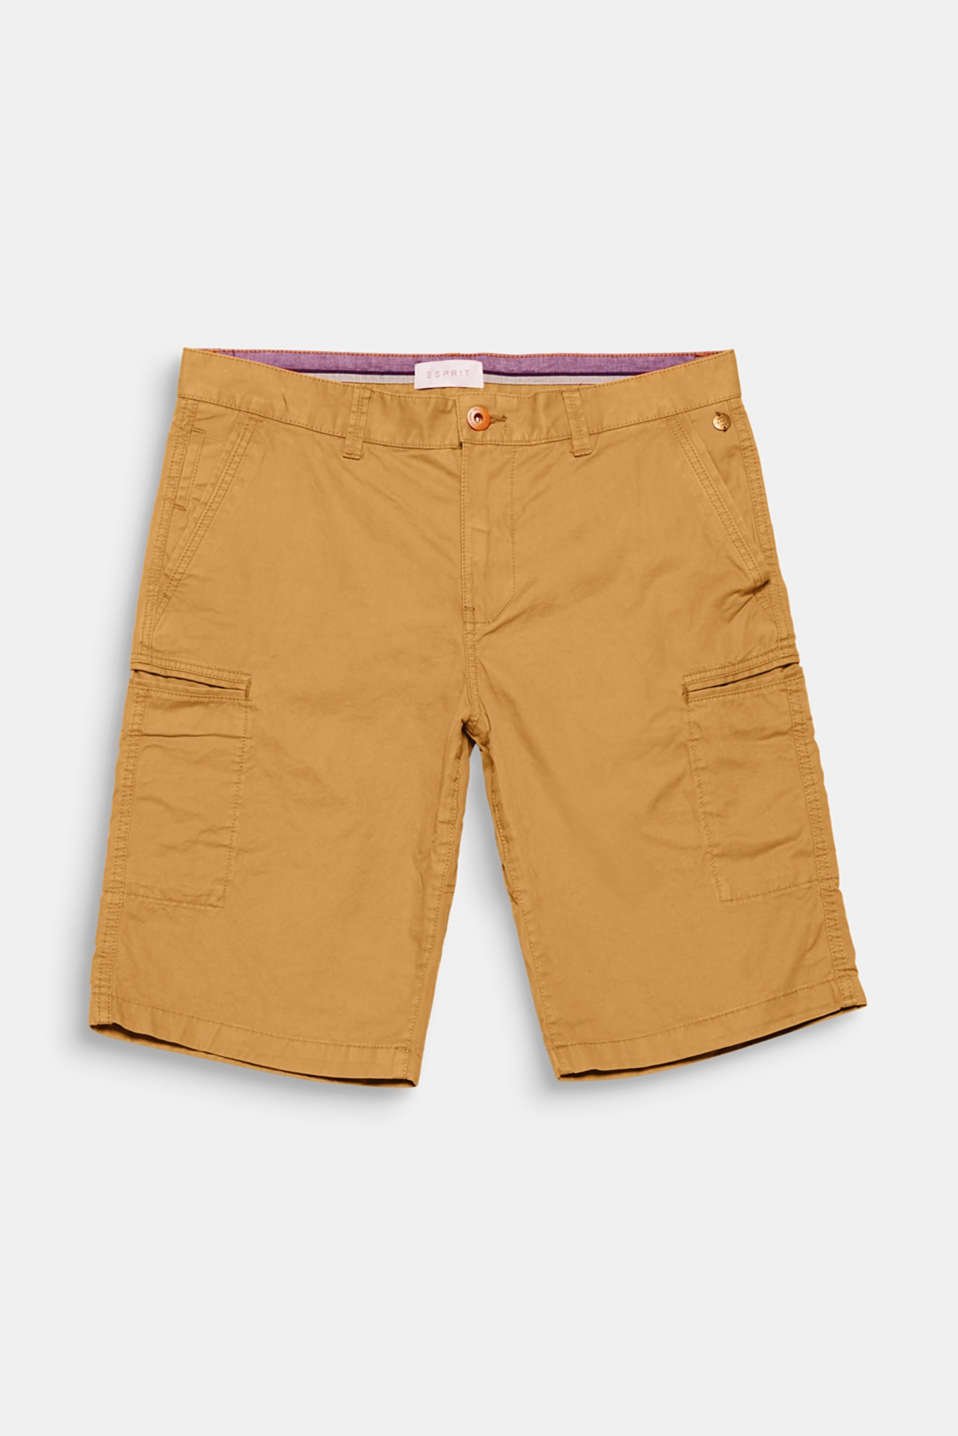 Your cargo update! The exquisite welt pocket takes these shorts to an exciting new level.